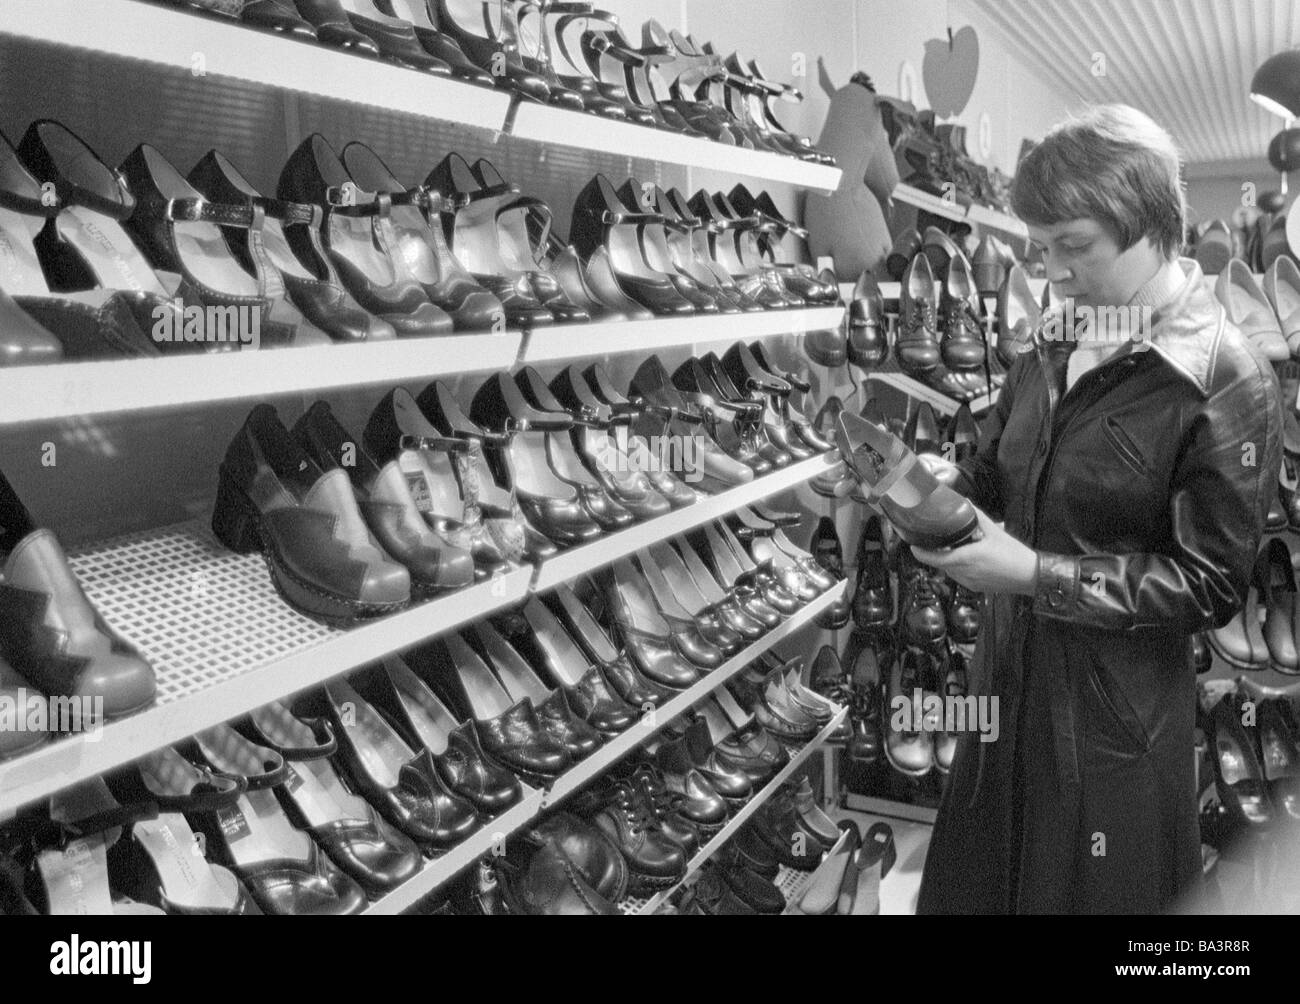 Seventies, black and white photo, economy, retailing, young woman in a footwear store, shelves with shoes, aged - Stock Image